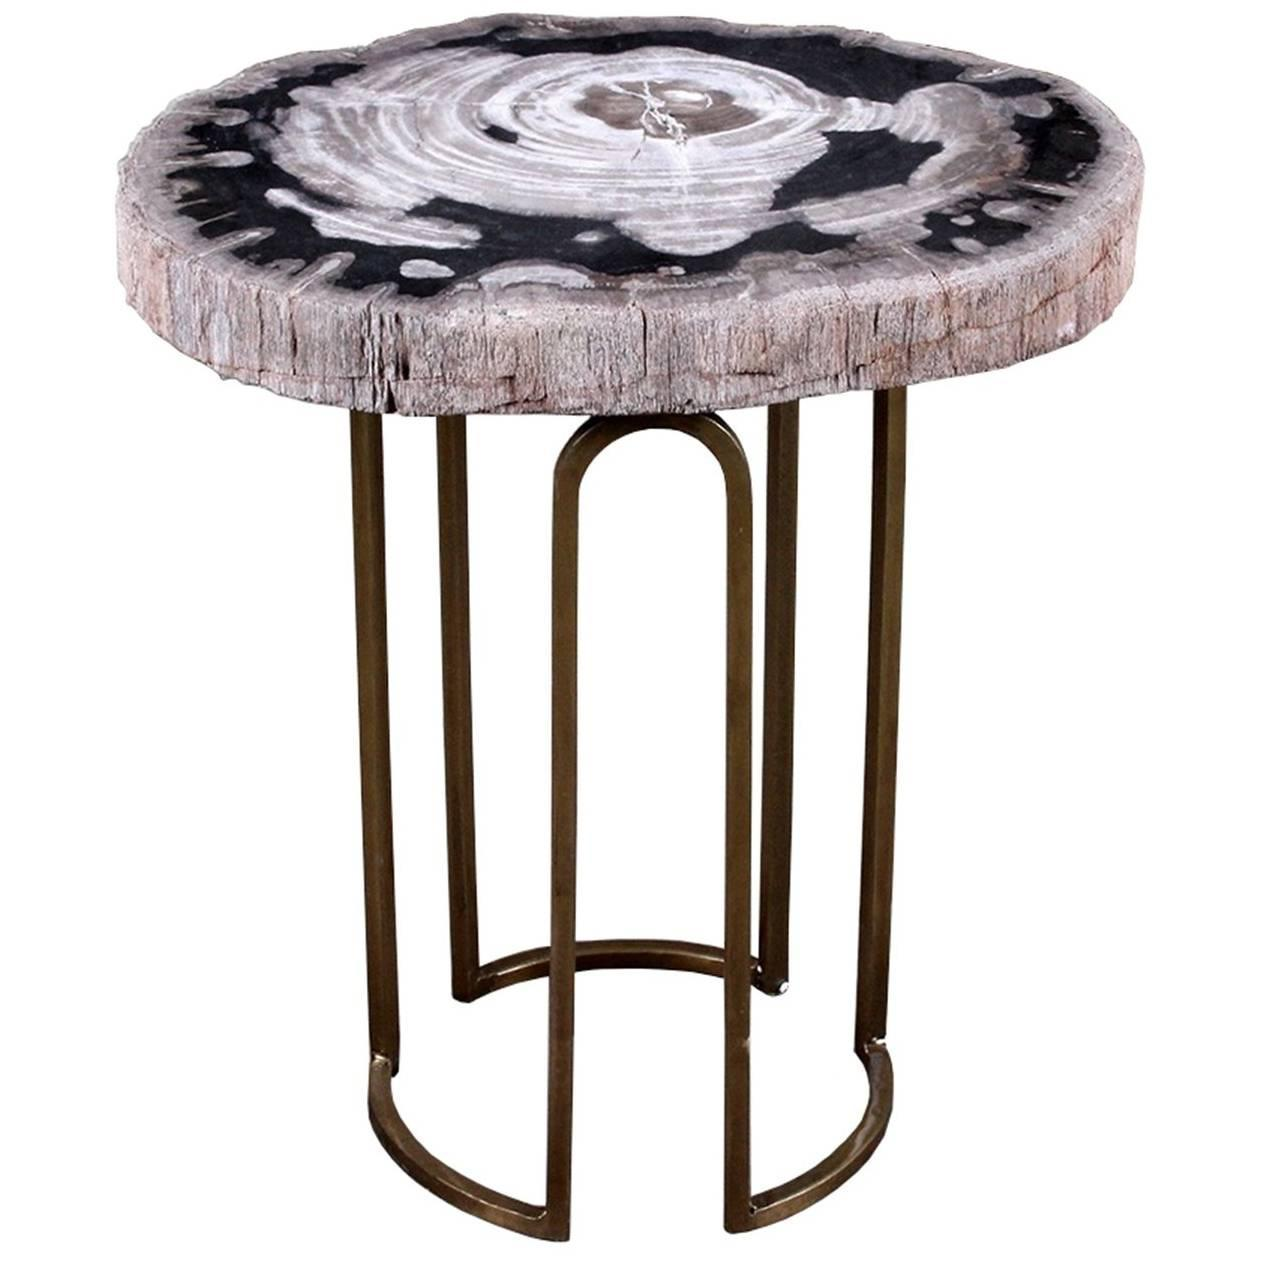 custom petrified wood and brass accent table for img inch end perspex coffee small chairs with arms hampton bay furniture lighting seattle white brown side tray pottery barn